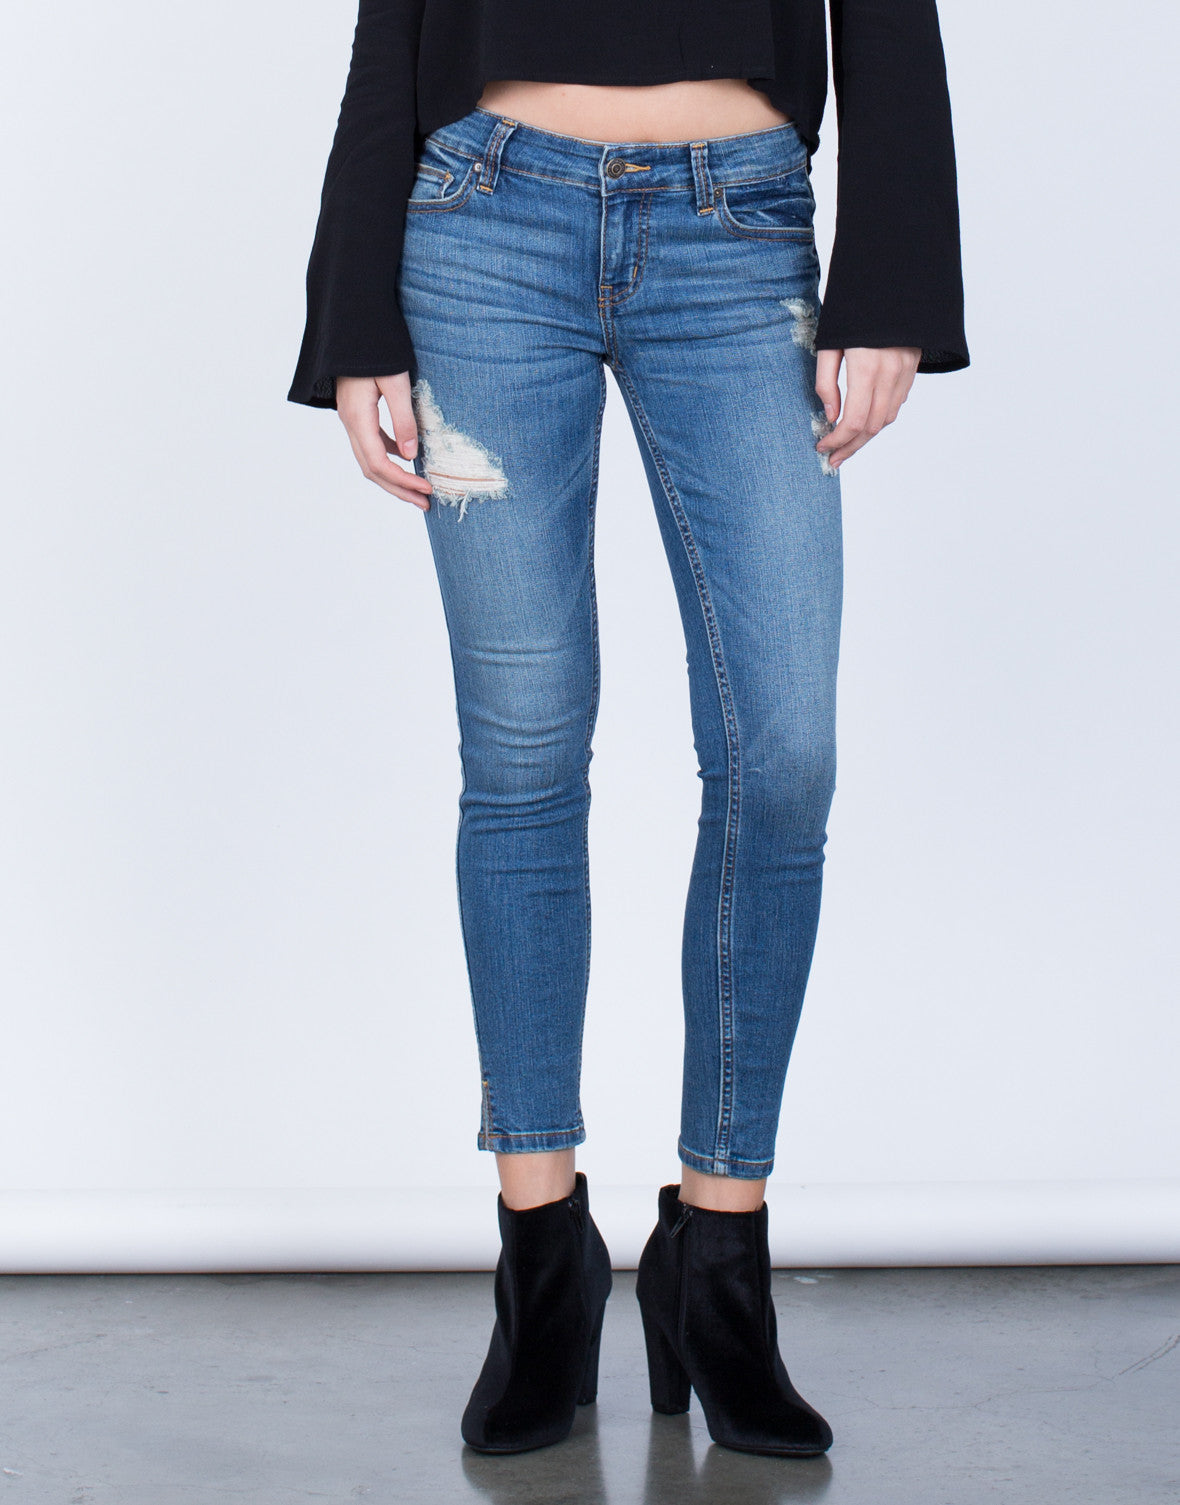 Slightly Distressed Denim Jeans - 2020AVE